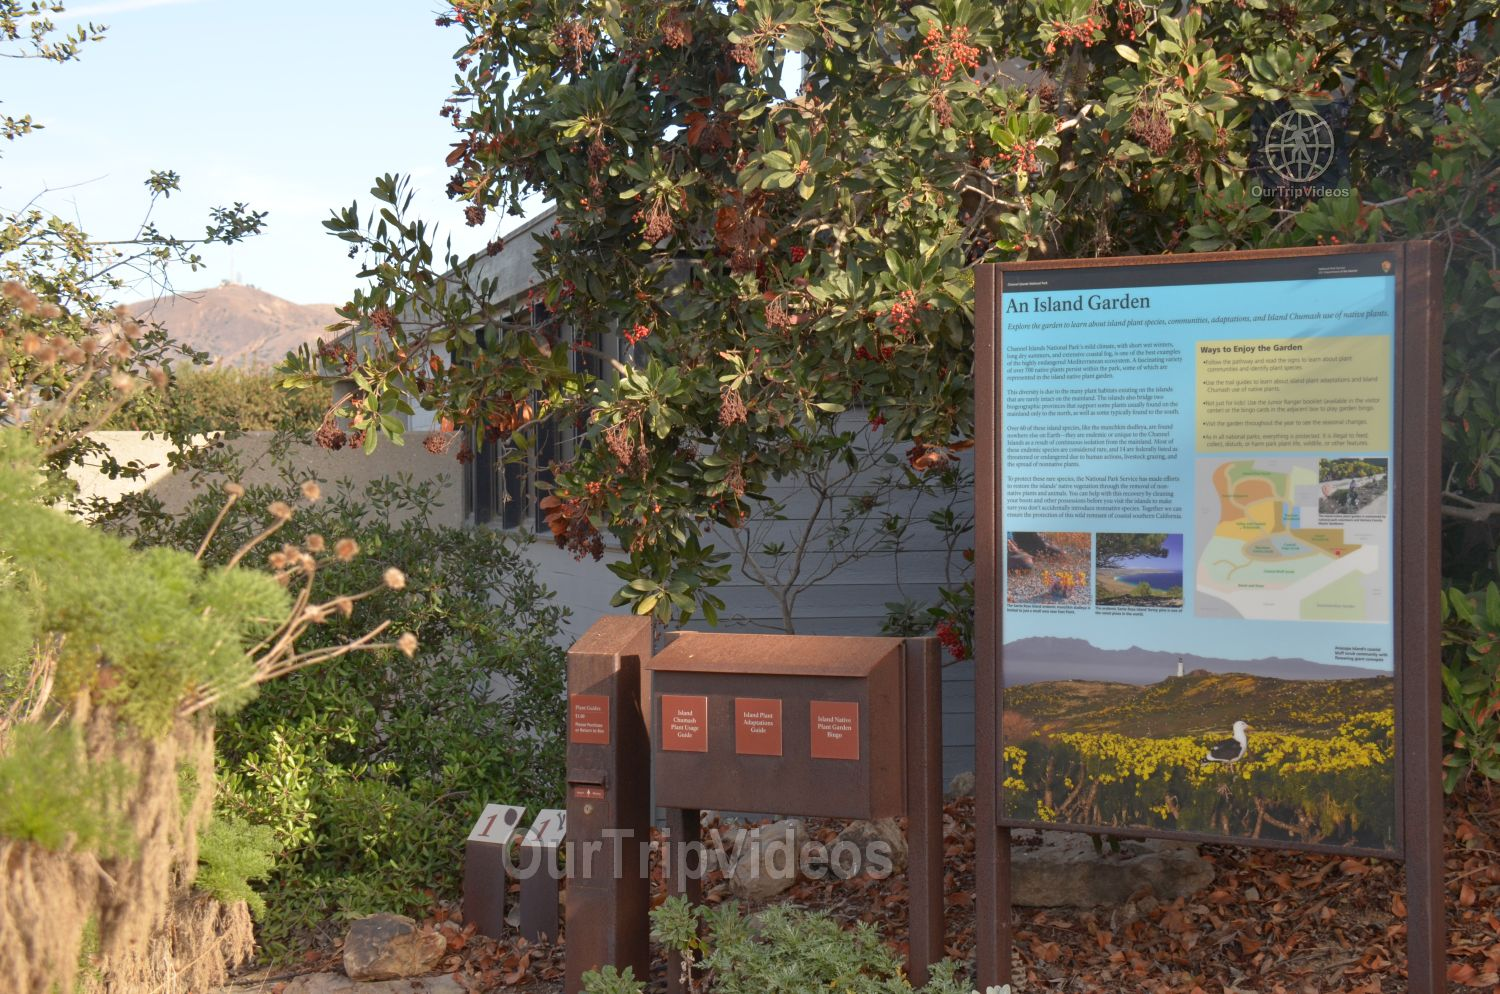 The Robert JL Visitor Center and Harbor cove beach, Ventura, CA, USA - Picture 5 of 25